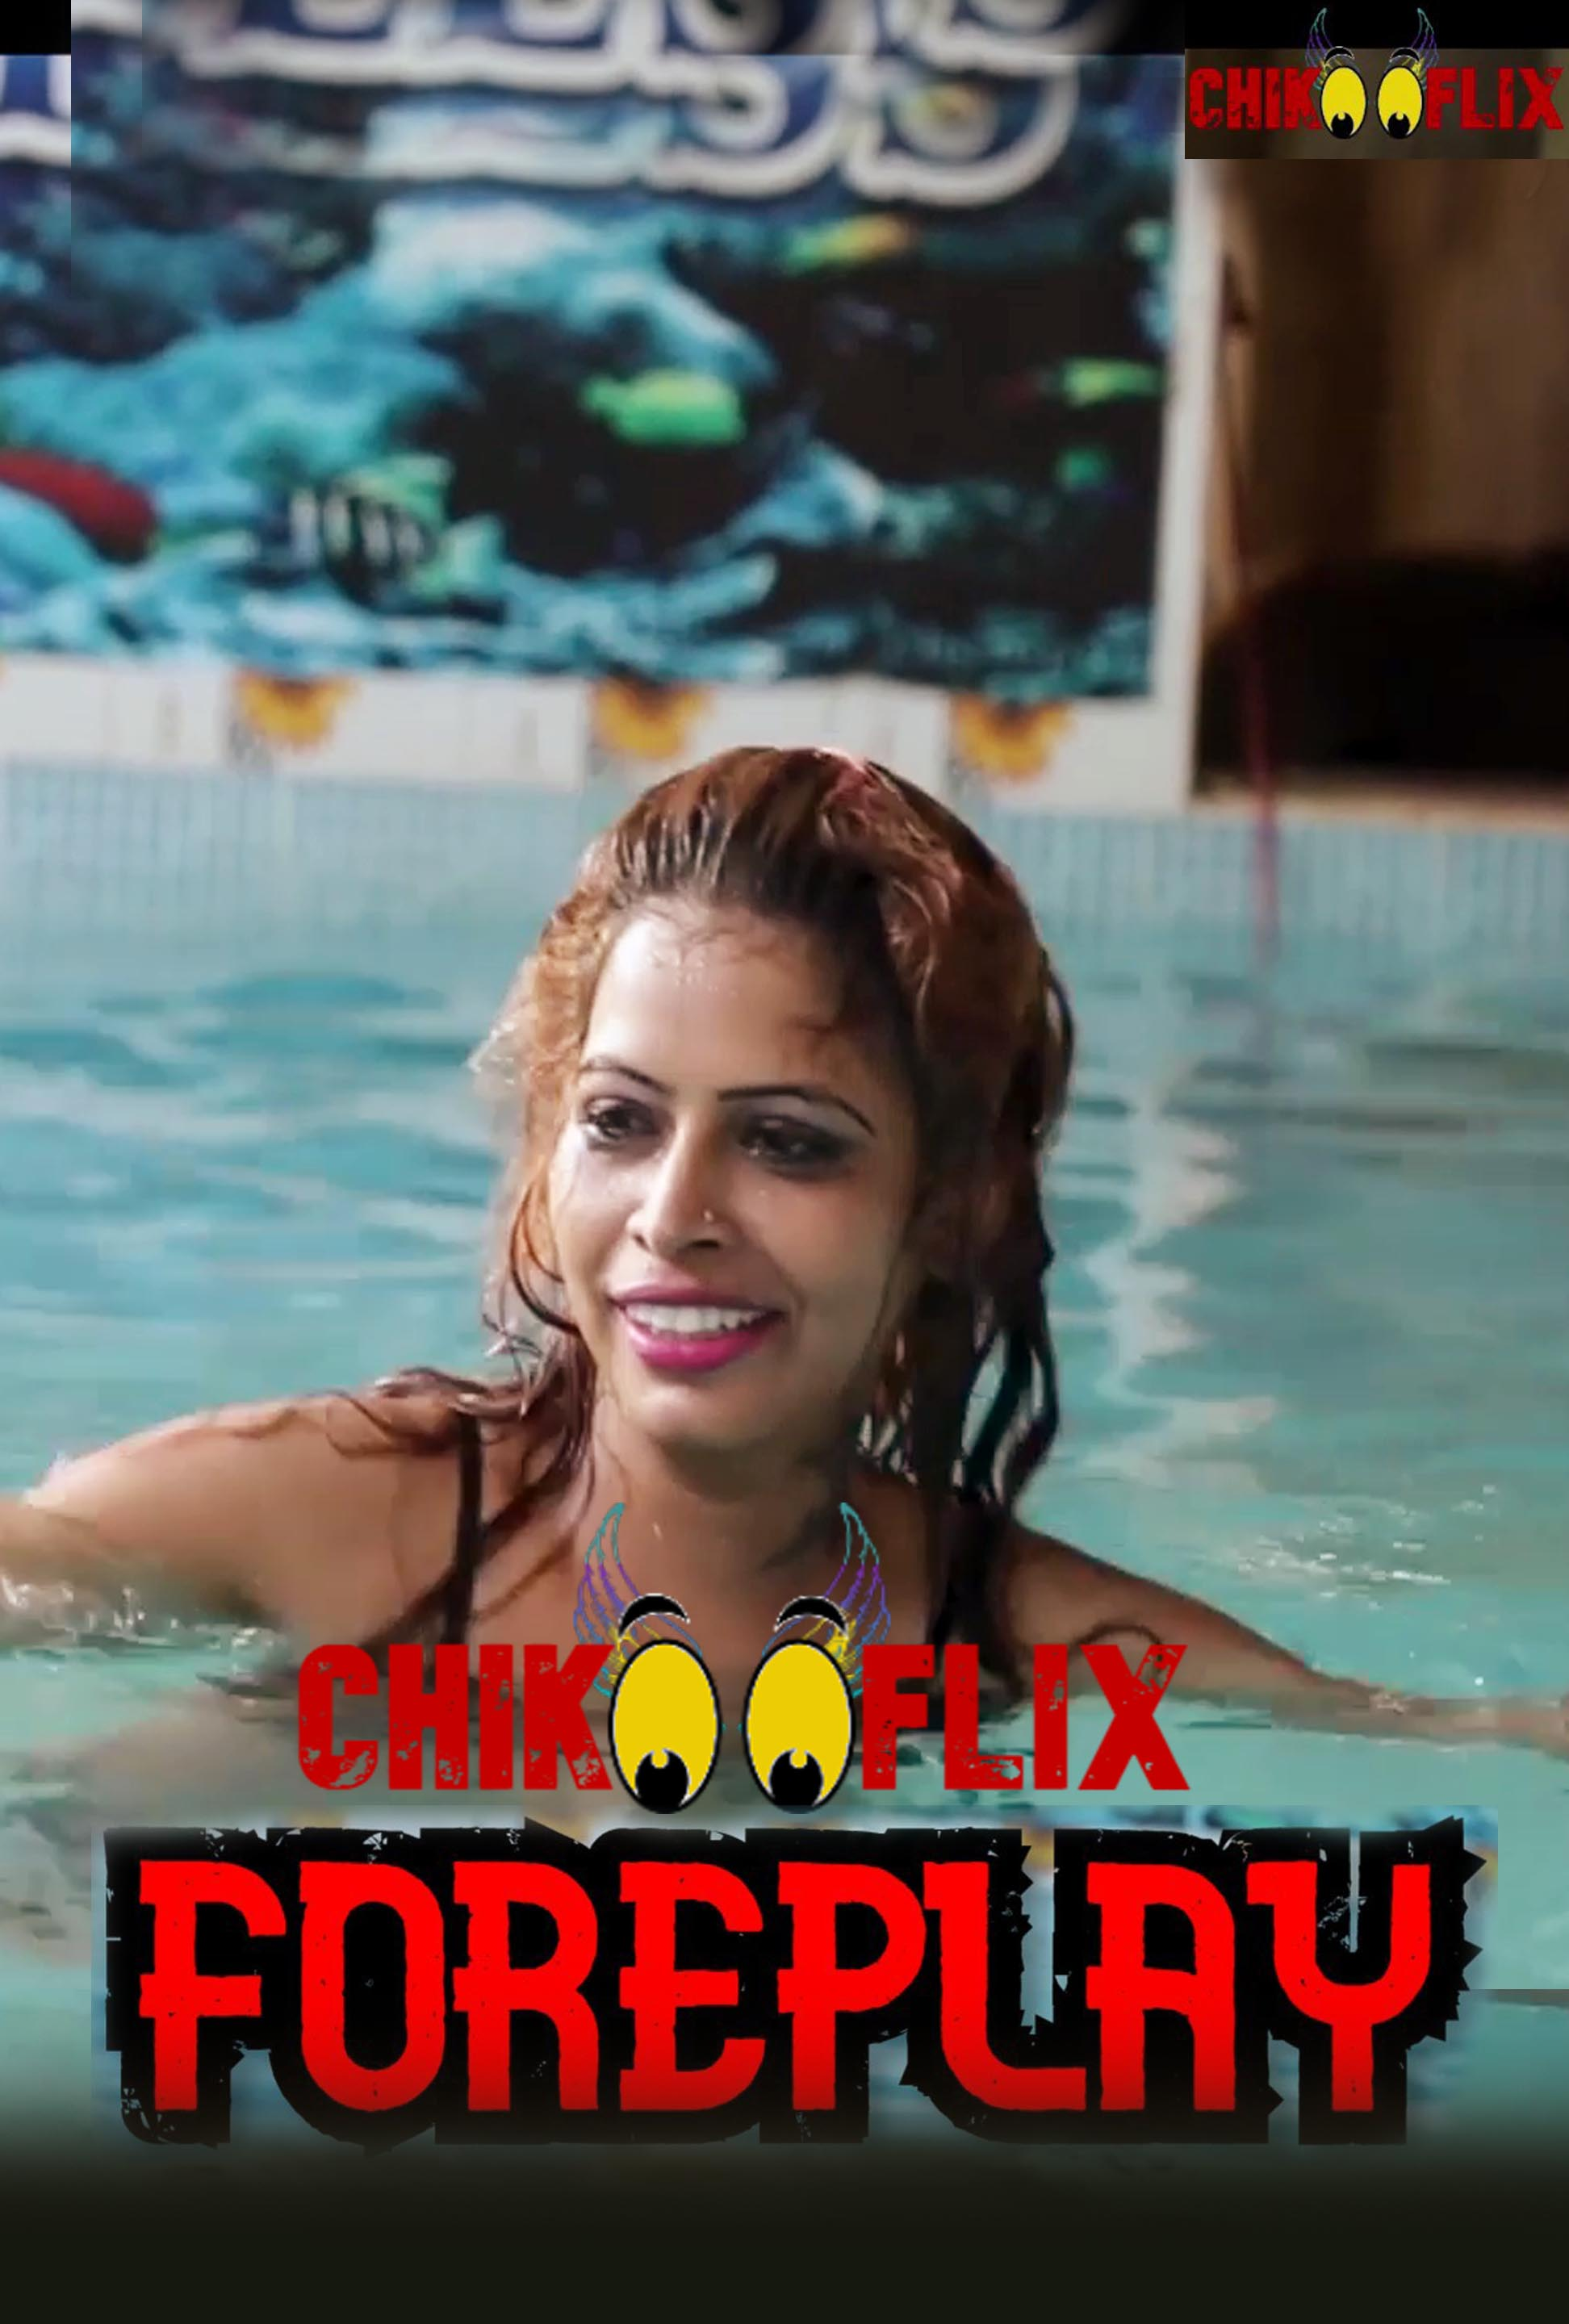 Foreplay 2020 ChikooFlix Originals Hindi Short Film 720p HDRip 190MB Download